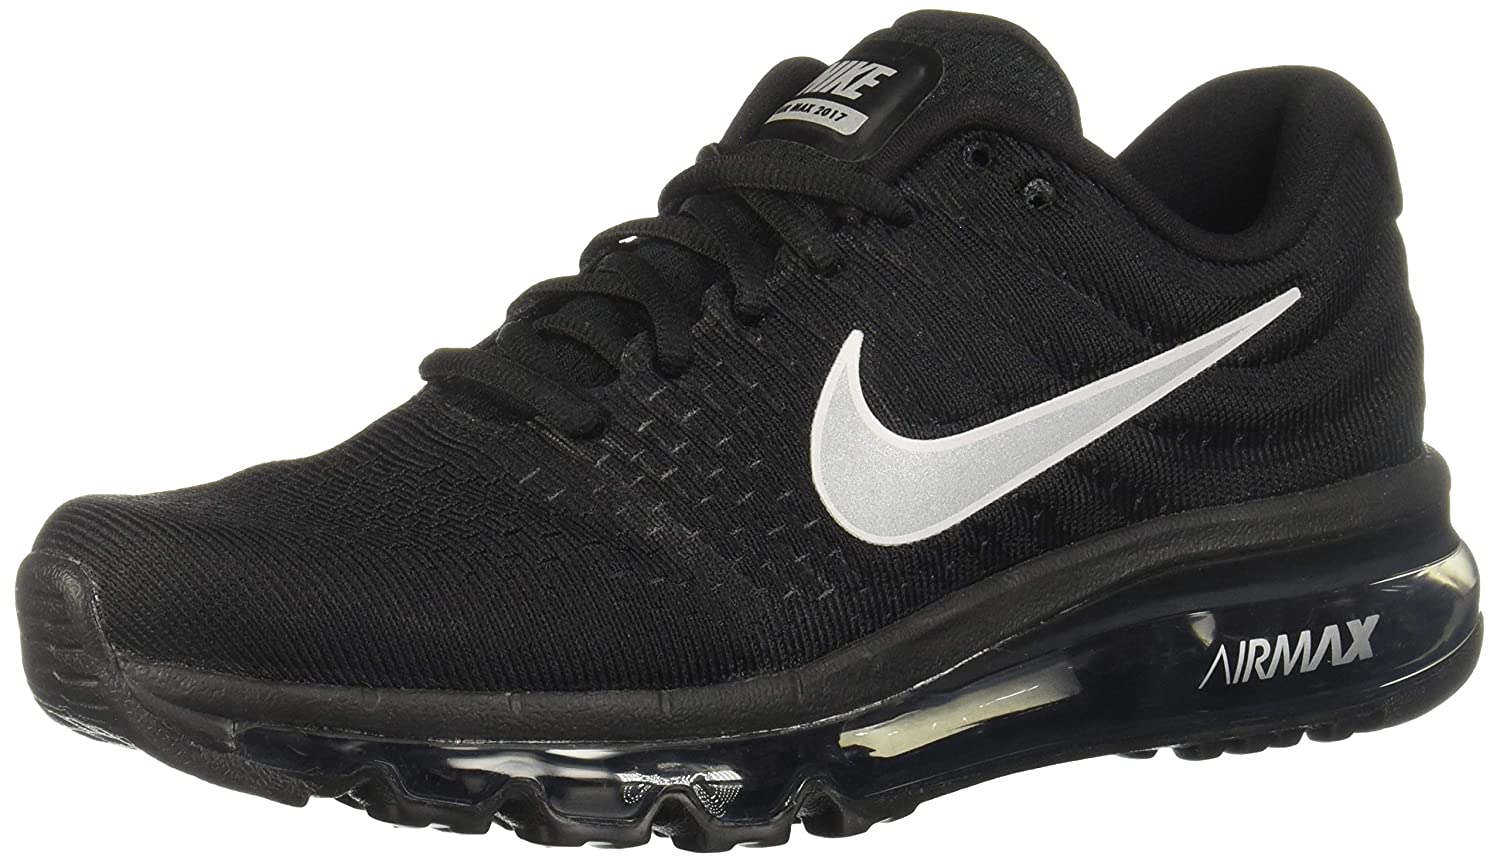 on sale 90f85 ab1a2 Amazon.com   Nike Womens Air Max 2017 Running Shoes Black White Anthracite  849560-001 Size 10   Road Running